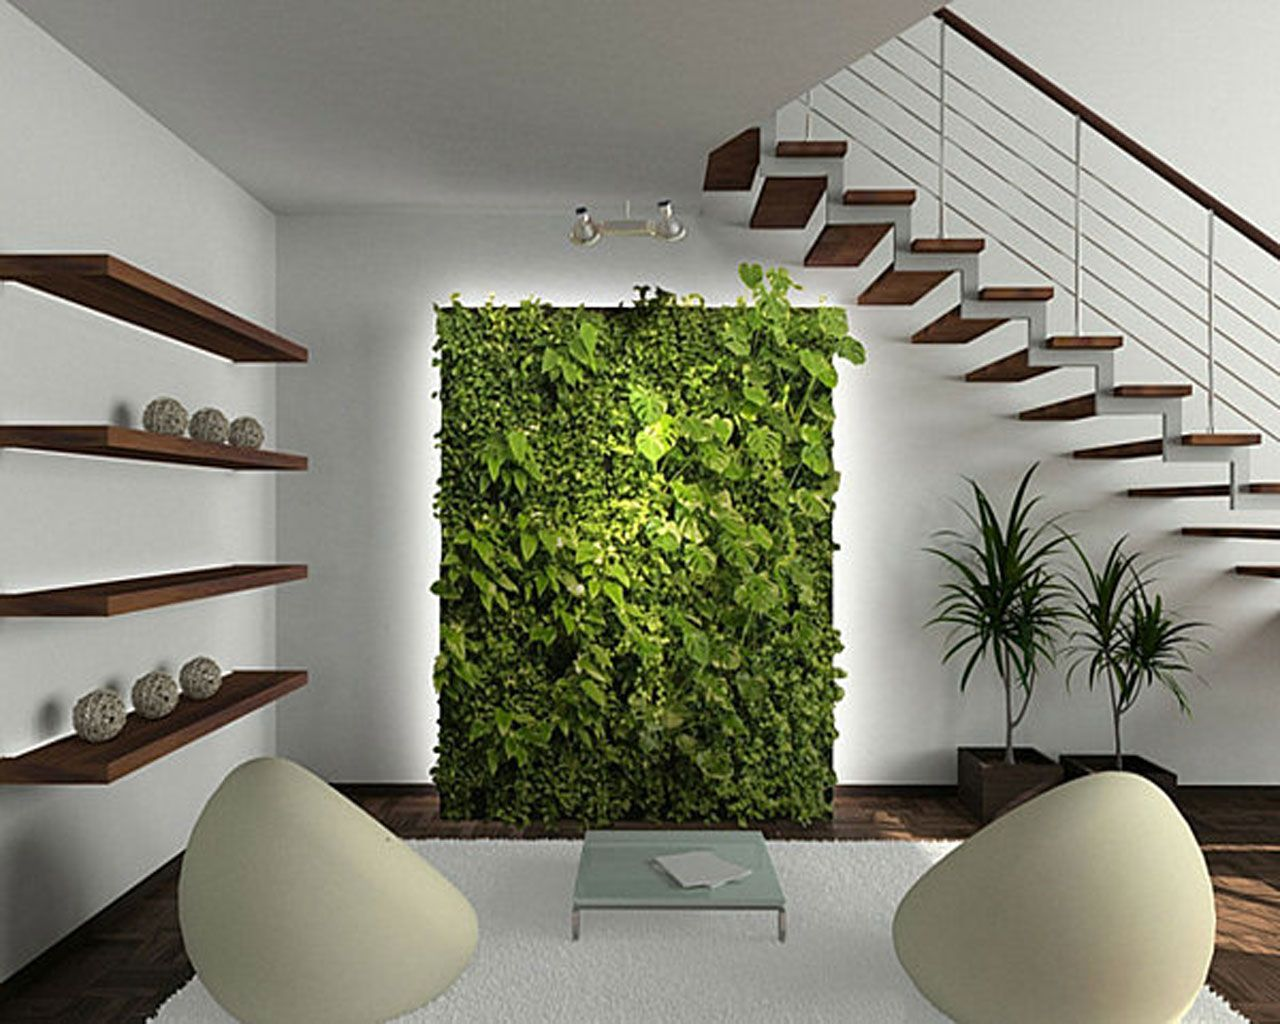 Stunning living room modern decor themes with green indoor gardening ...